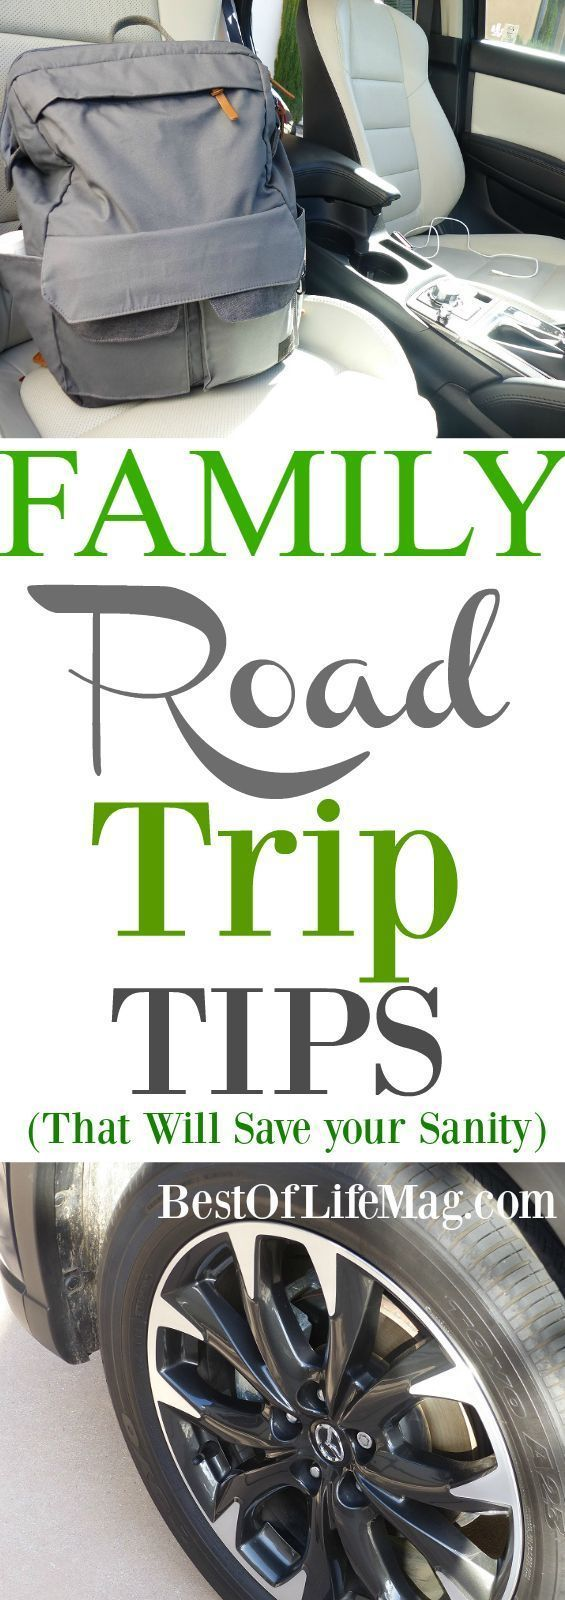 Save time, stop less, and make a family road trip enjoyable with these road trip tips.